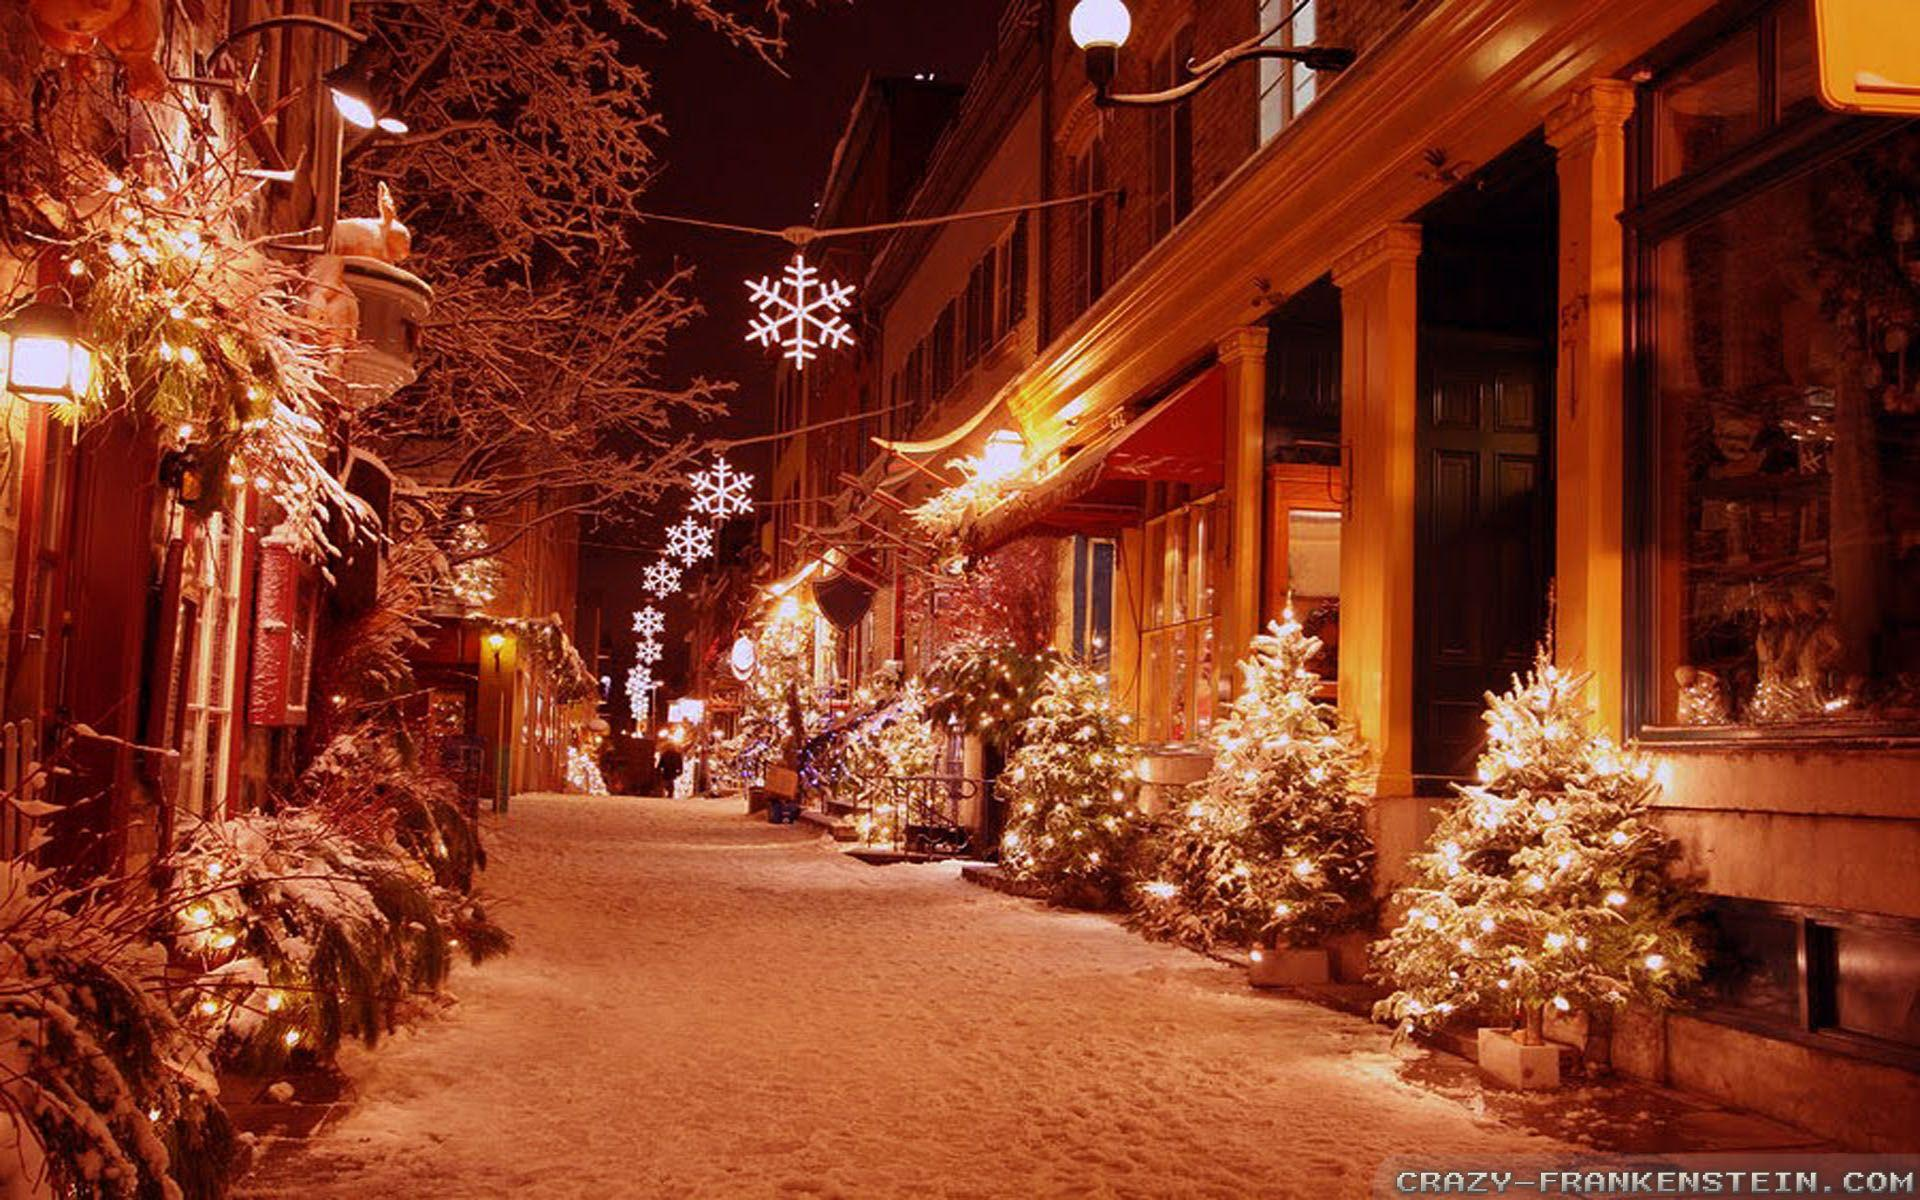 Outdoor Christmas Decorations wallpapers